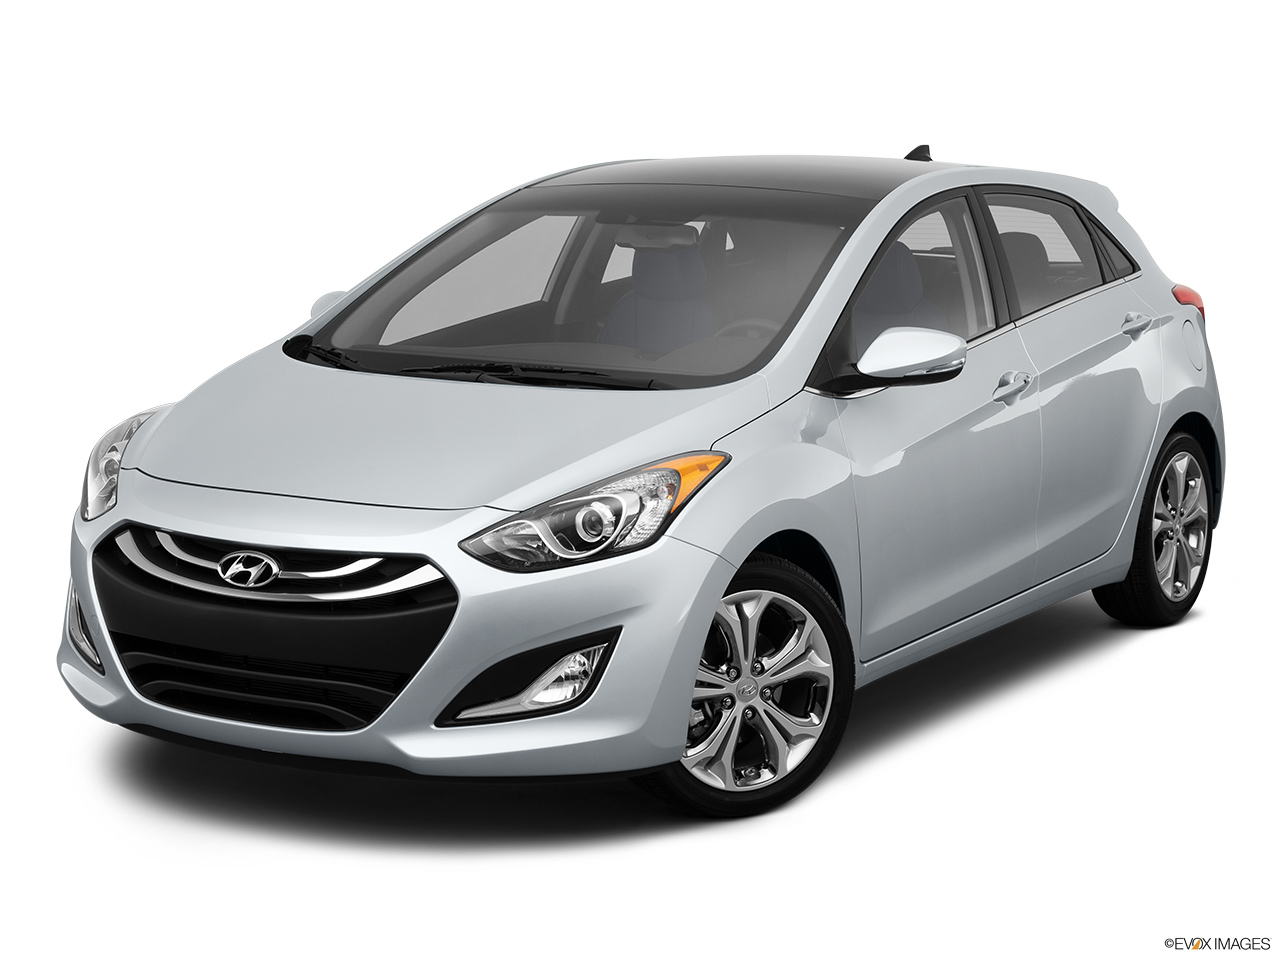 2014 hyundai elantra gt 5dr hatchback manual. Black Bedroom Furniture Sets. Home Design Ideas